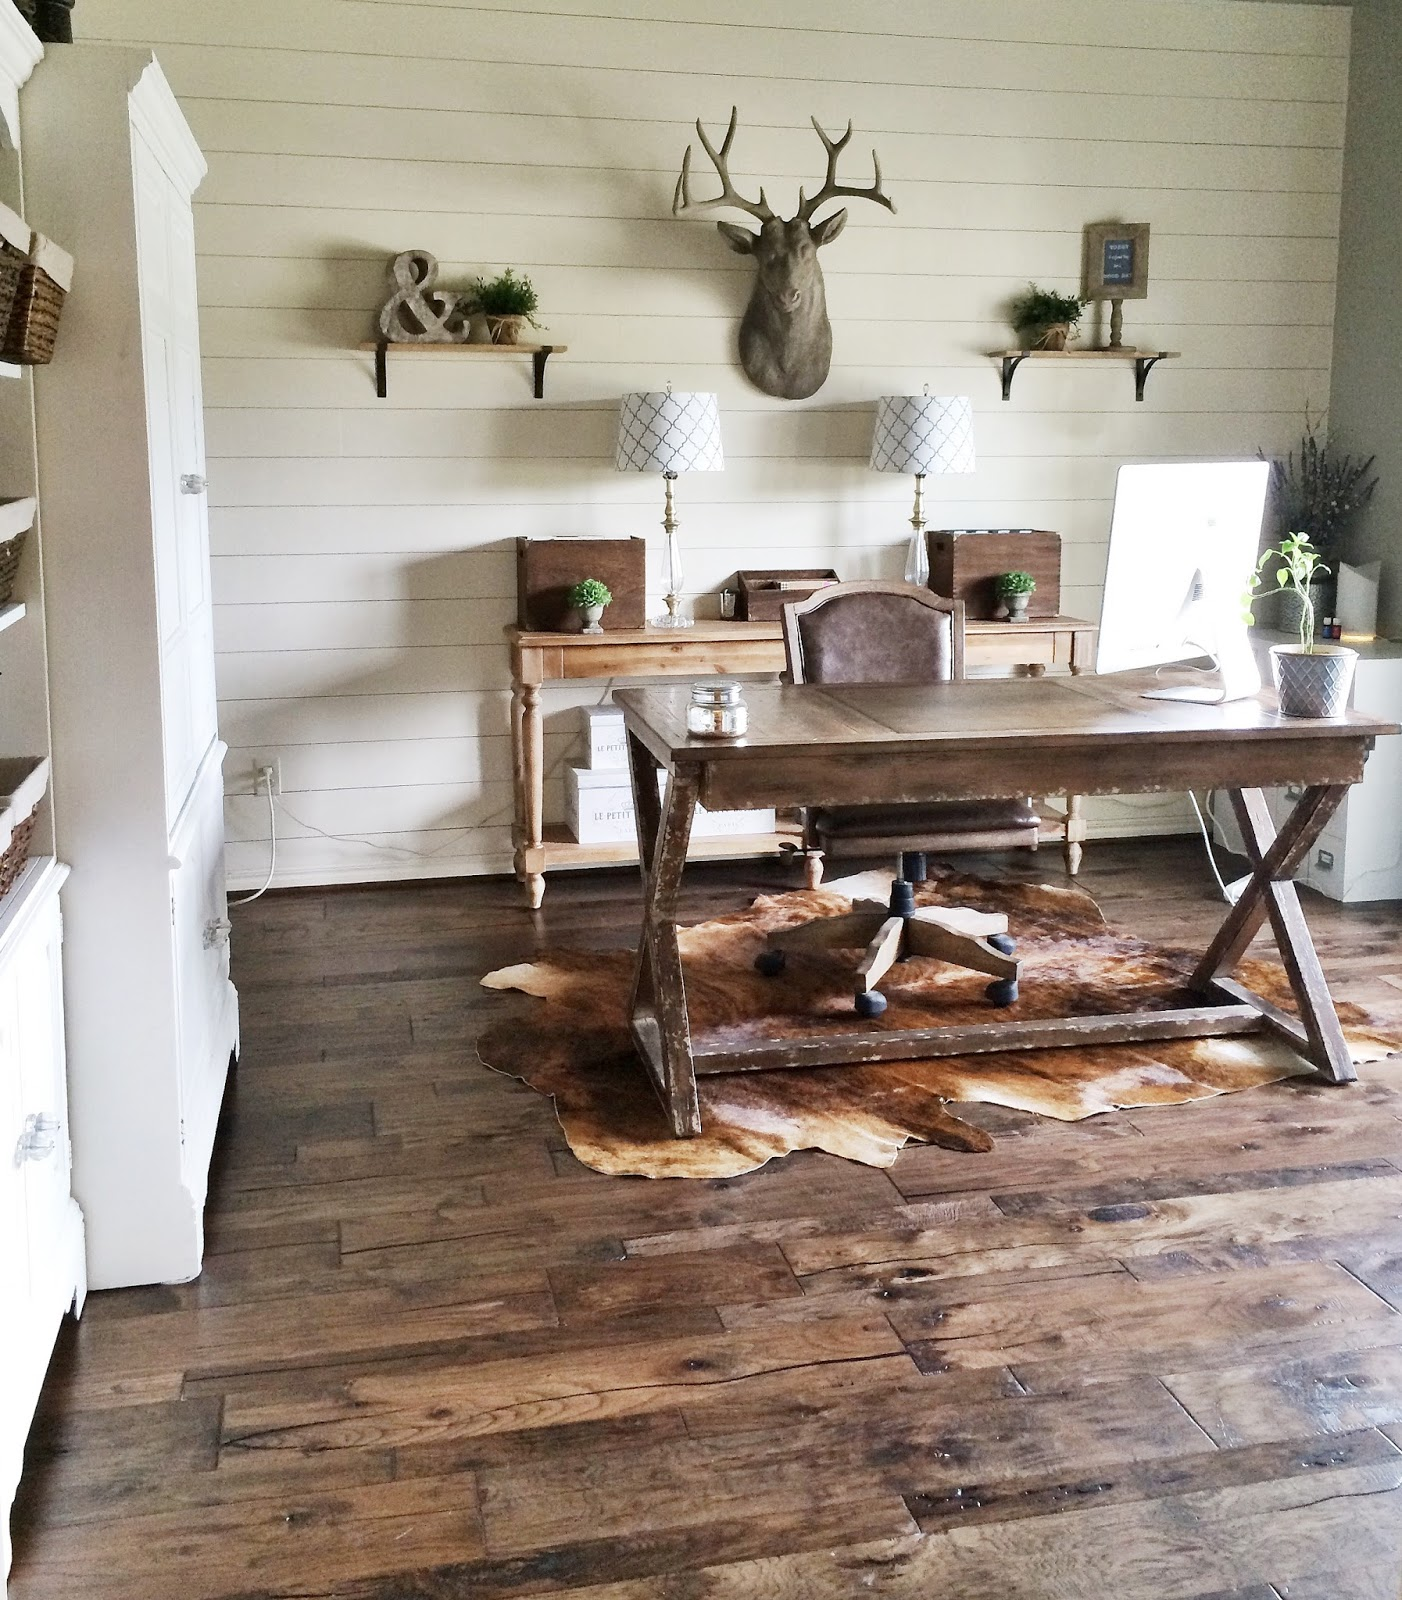 White Bathroom Remodel Ideas Remodelaholic How To Install A Shiplap Wall Rustic